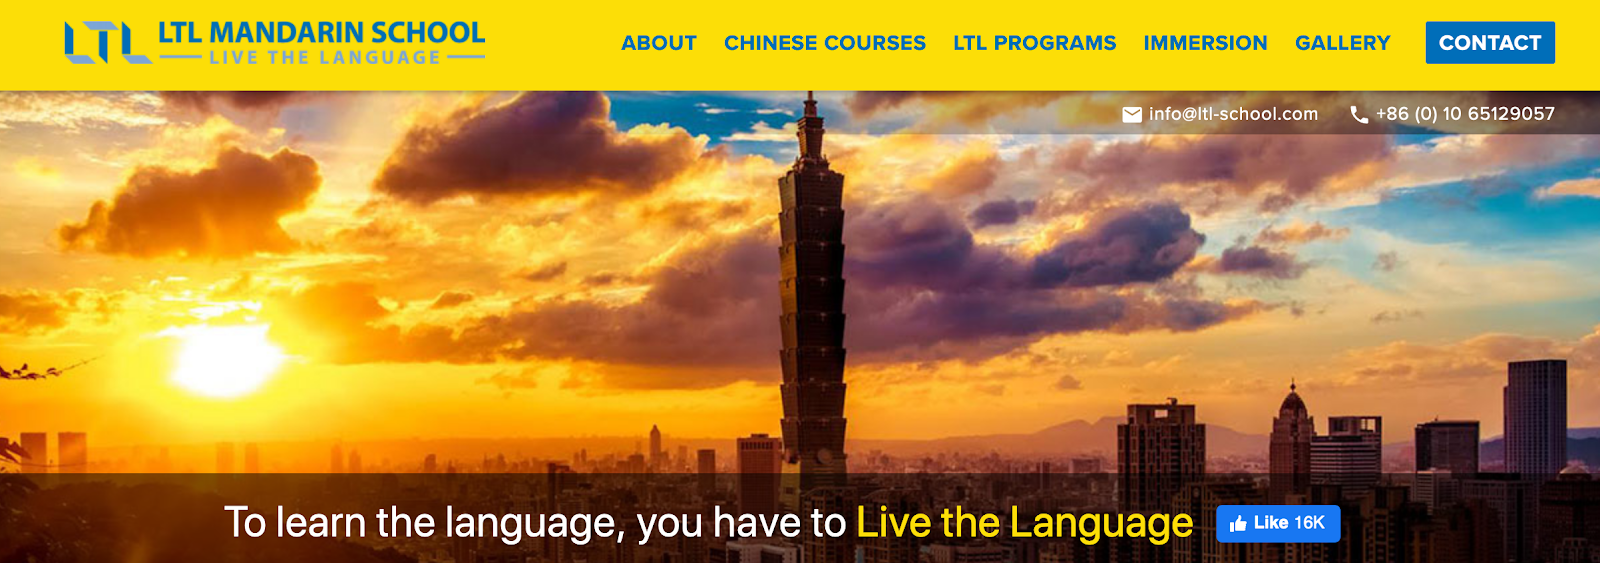 Education Brands | LTL Mandarin School